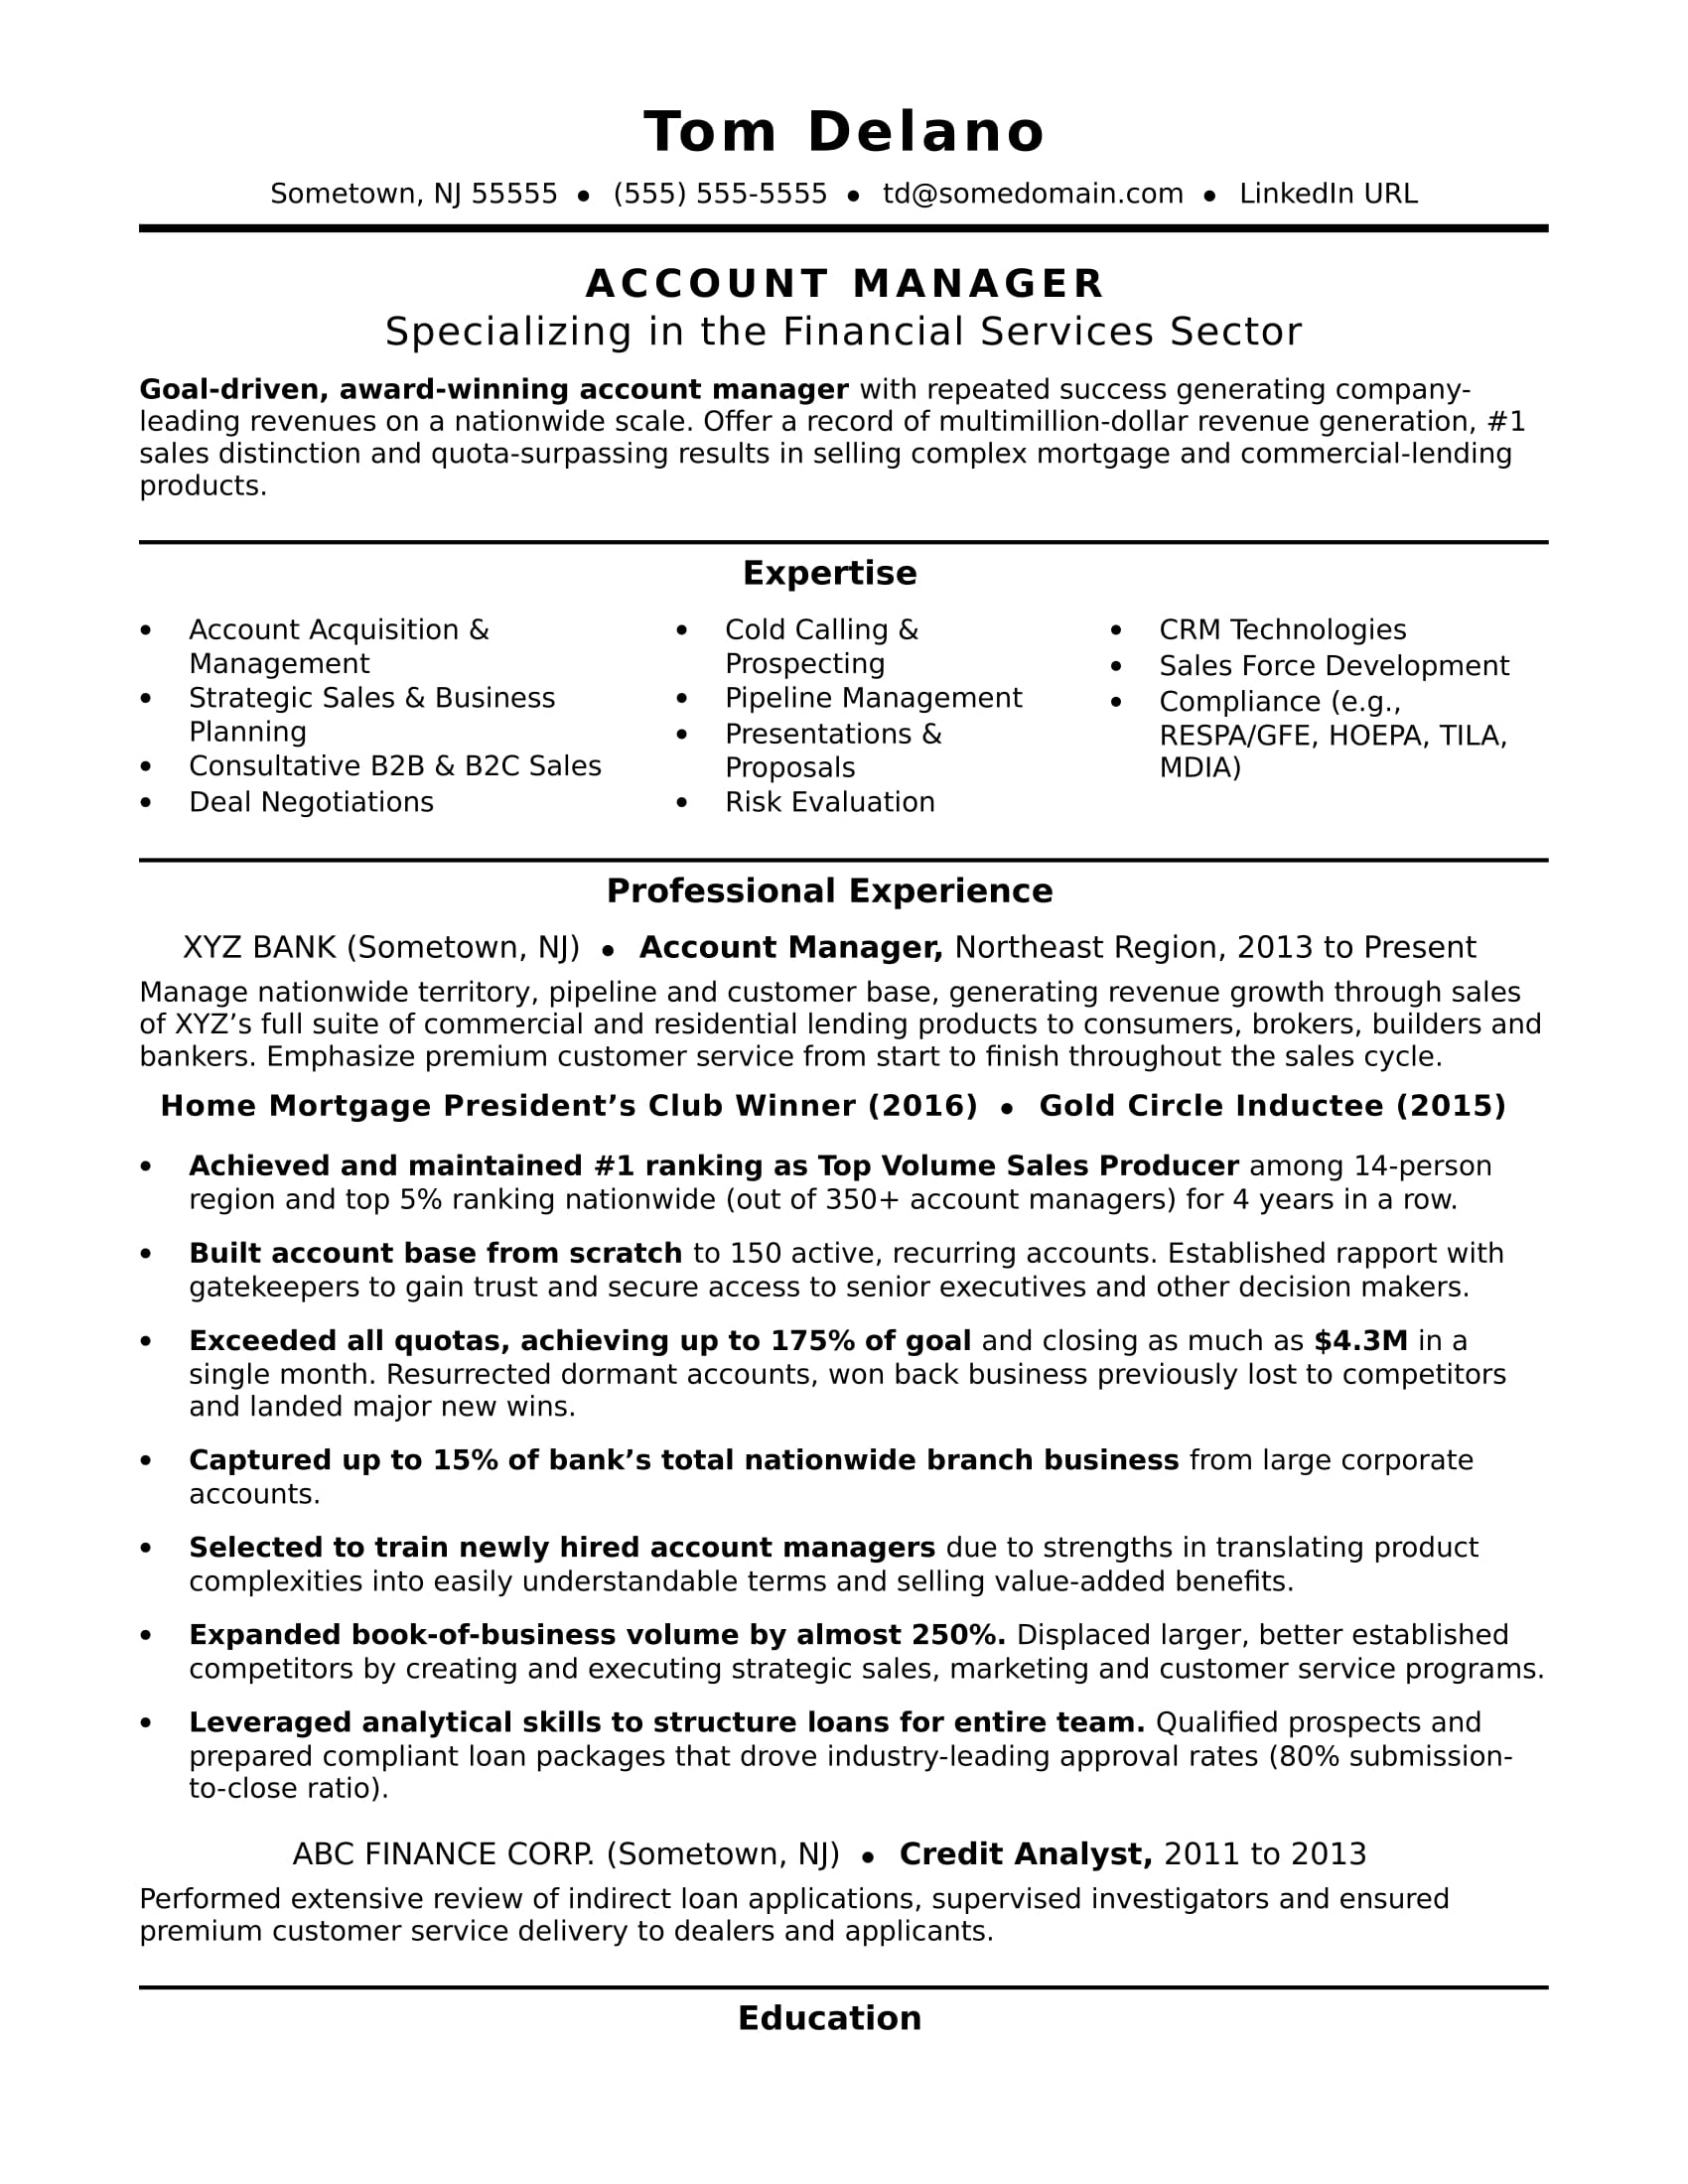 account manager resume sample monster keywords professional summary student clinical Resume Account Manager Resume Keywords